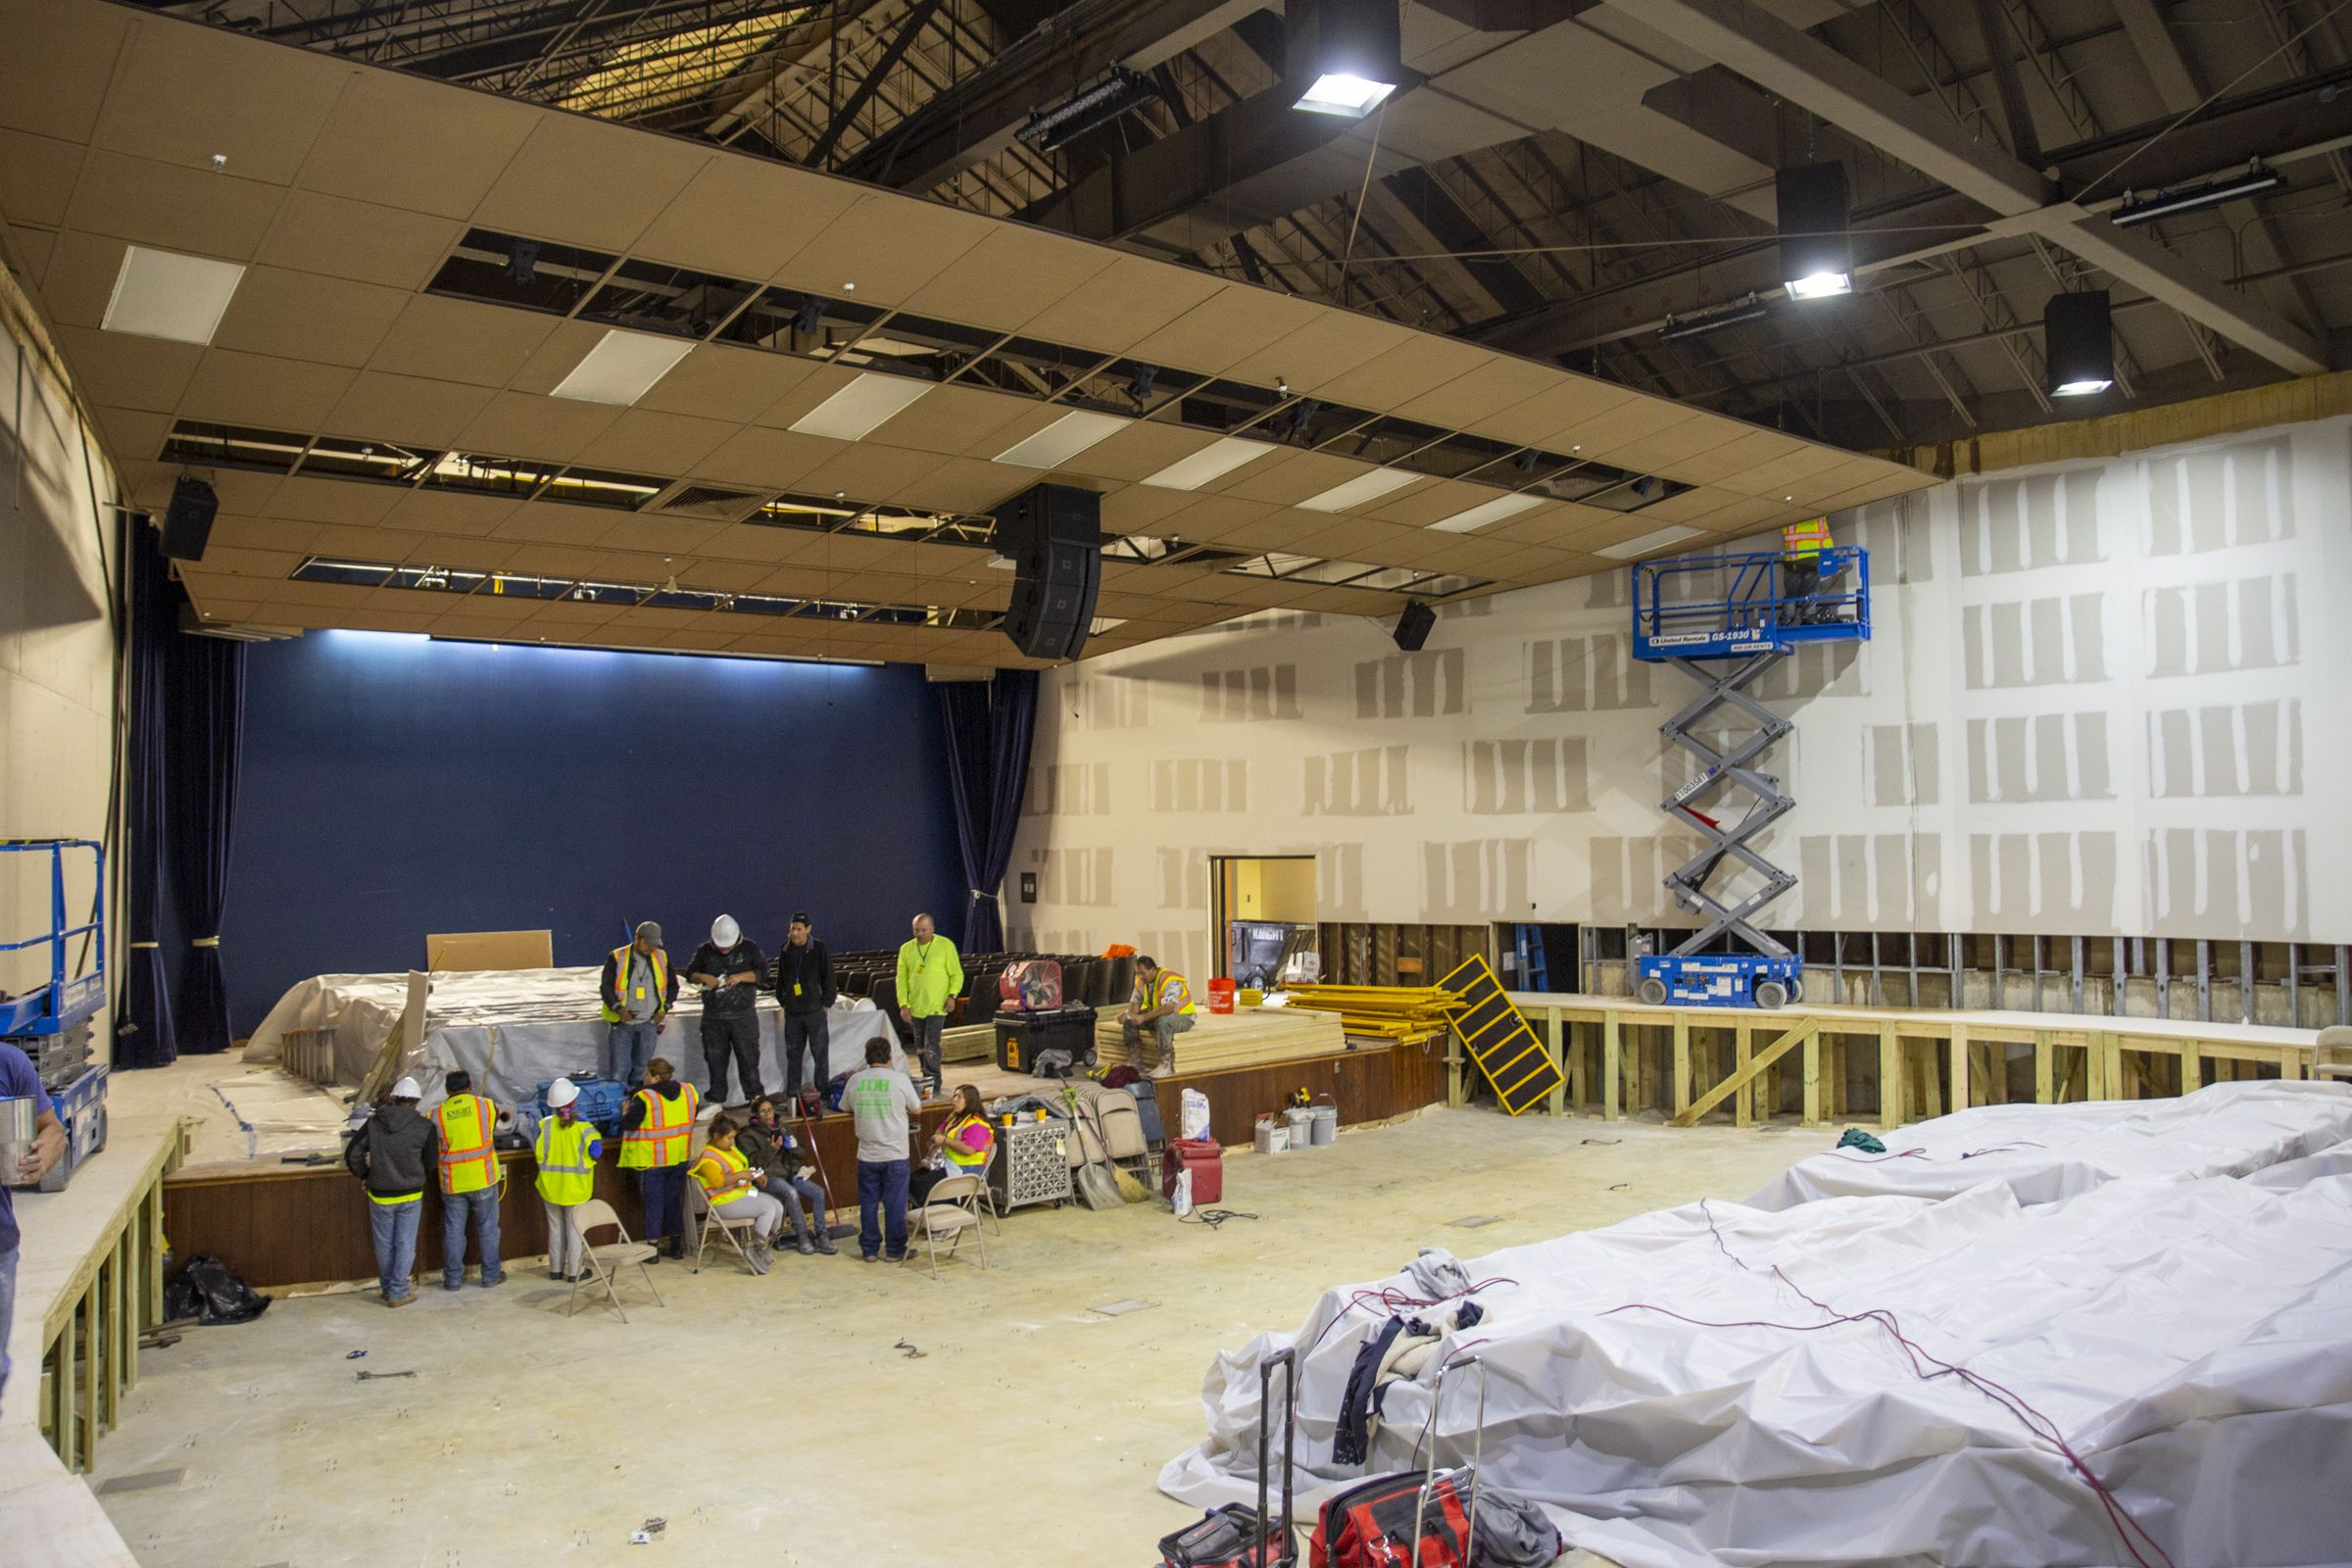 Crews work to repair Decherd Auditorium.